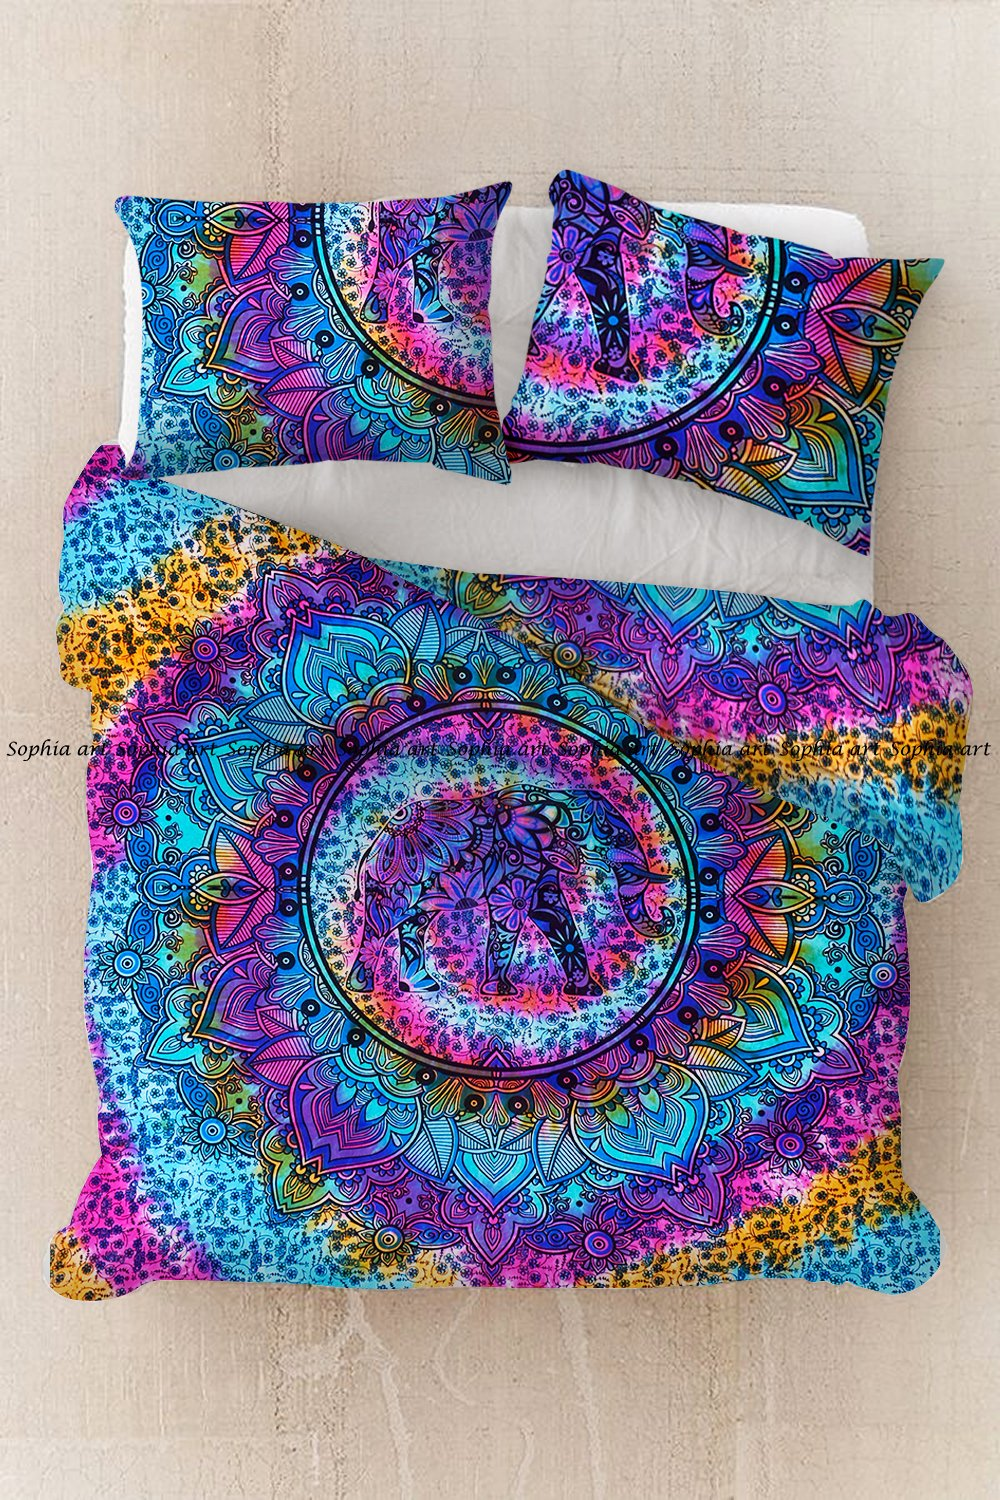 Sophia Art Exclusive Multi Tye Dye Elephant Mandala Queen Size Handmade Quit Cover bohemian Cotton Mandala DUVET COVER WITH PILLOWCASES By mandala Doona cover, Donna Cover Indian Duvet Set (Multi)